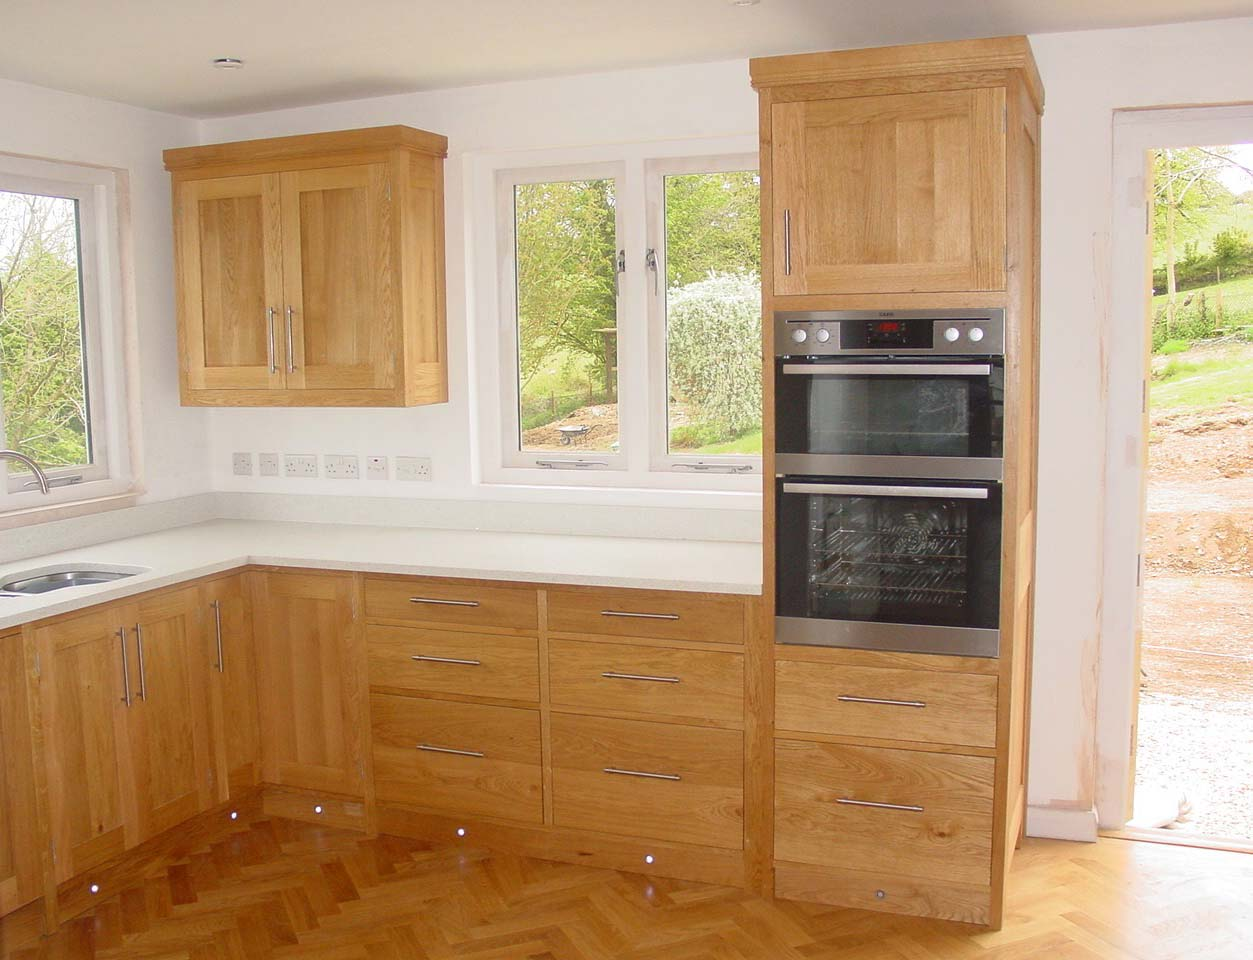 Full Height Oak Integrated Oven Unit